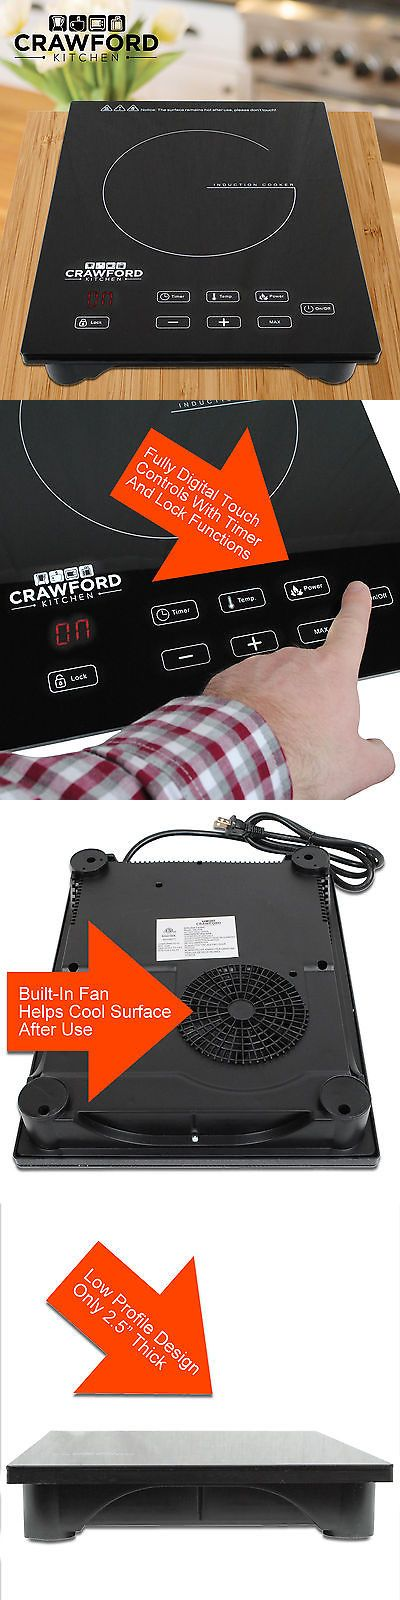 appliances: New Portable 1800W Induction Cooker Electric Cooktop Burner Countertop Home P -> BUY IT NOW ONLY: $59.95 on eBay!